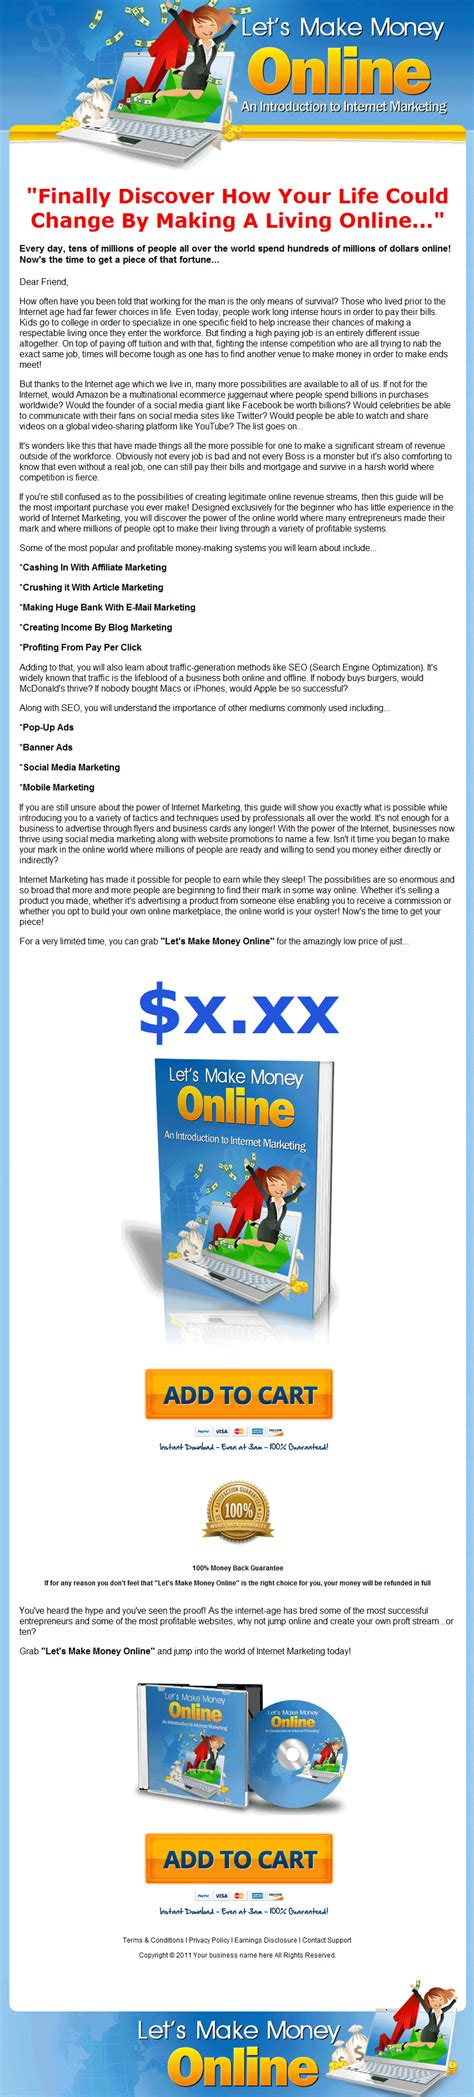 Make Money Online Plr Ebook - lets make money online plr ebook internet marketing updated